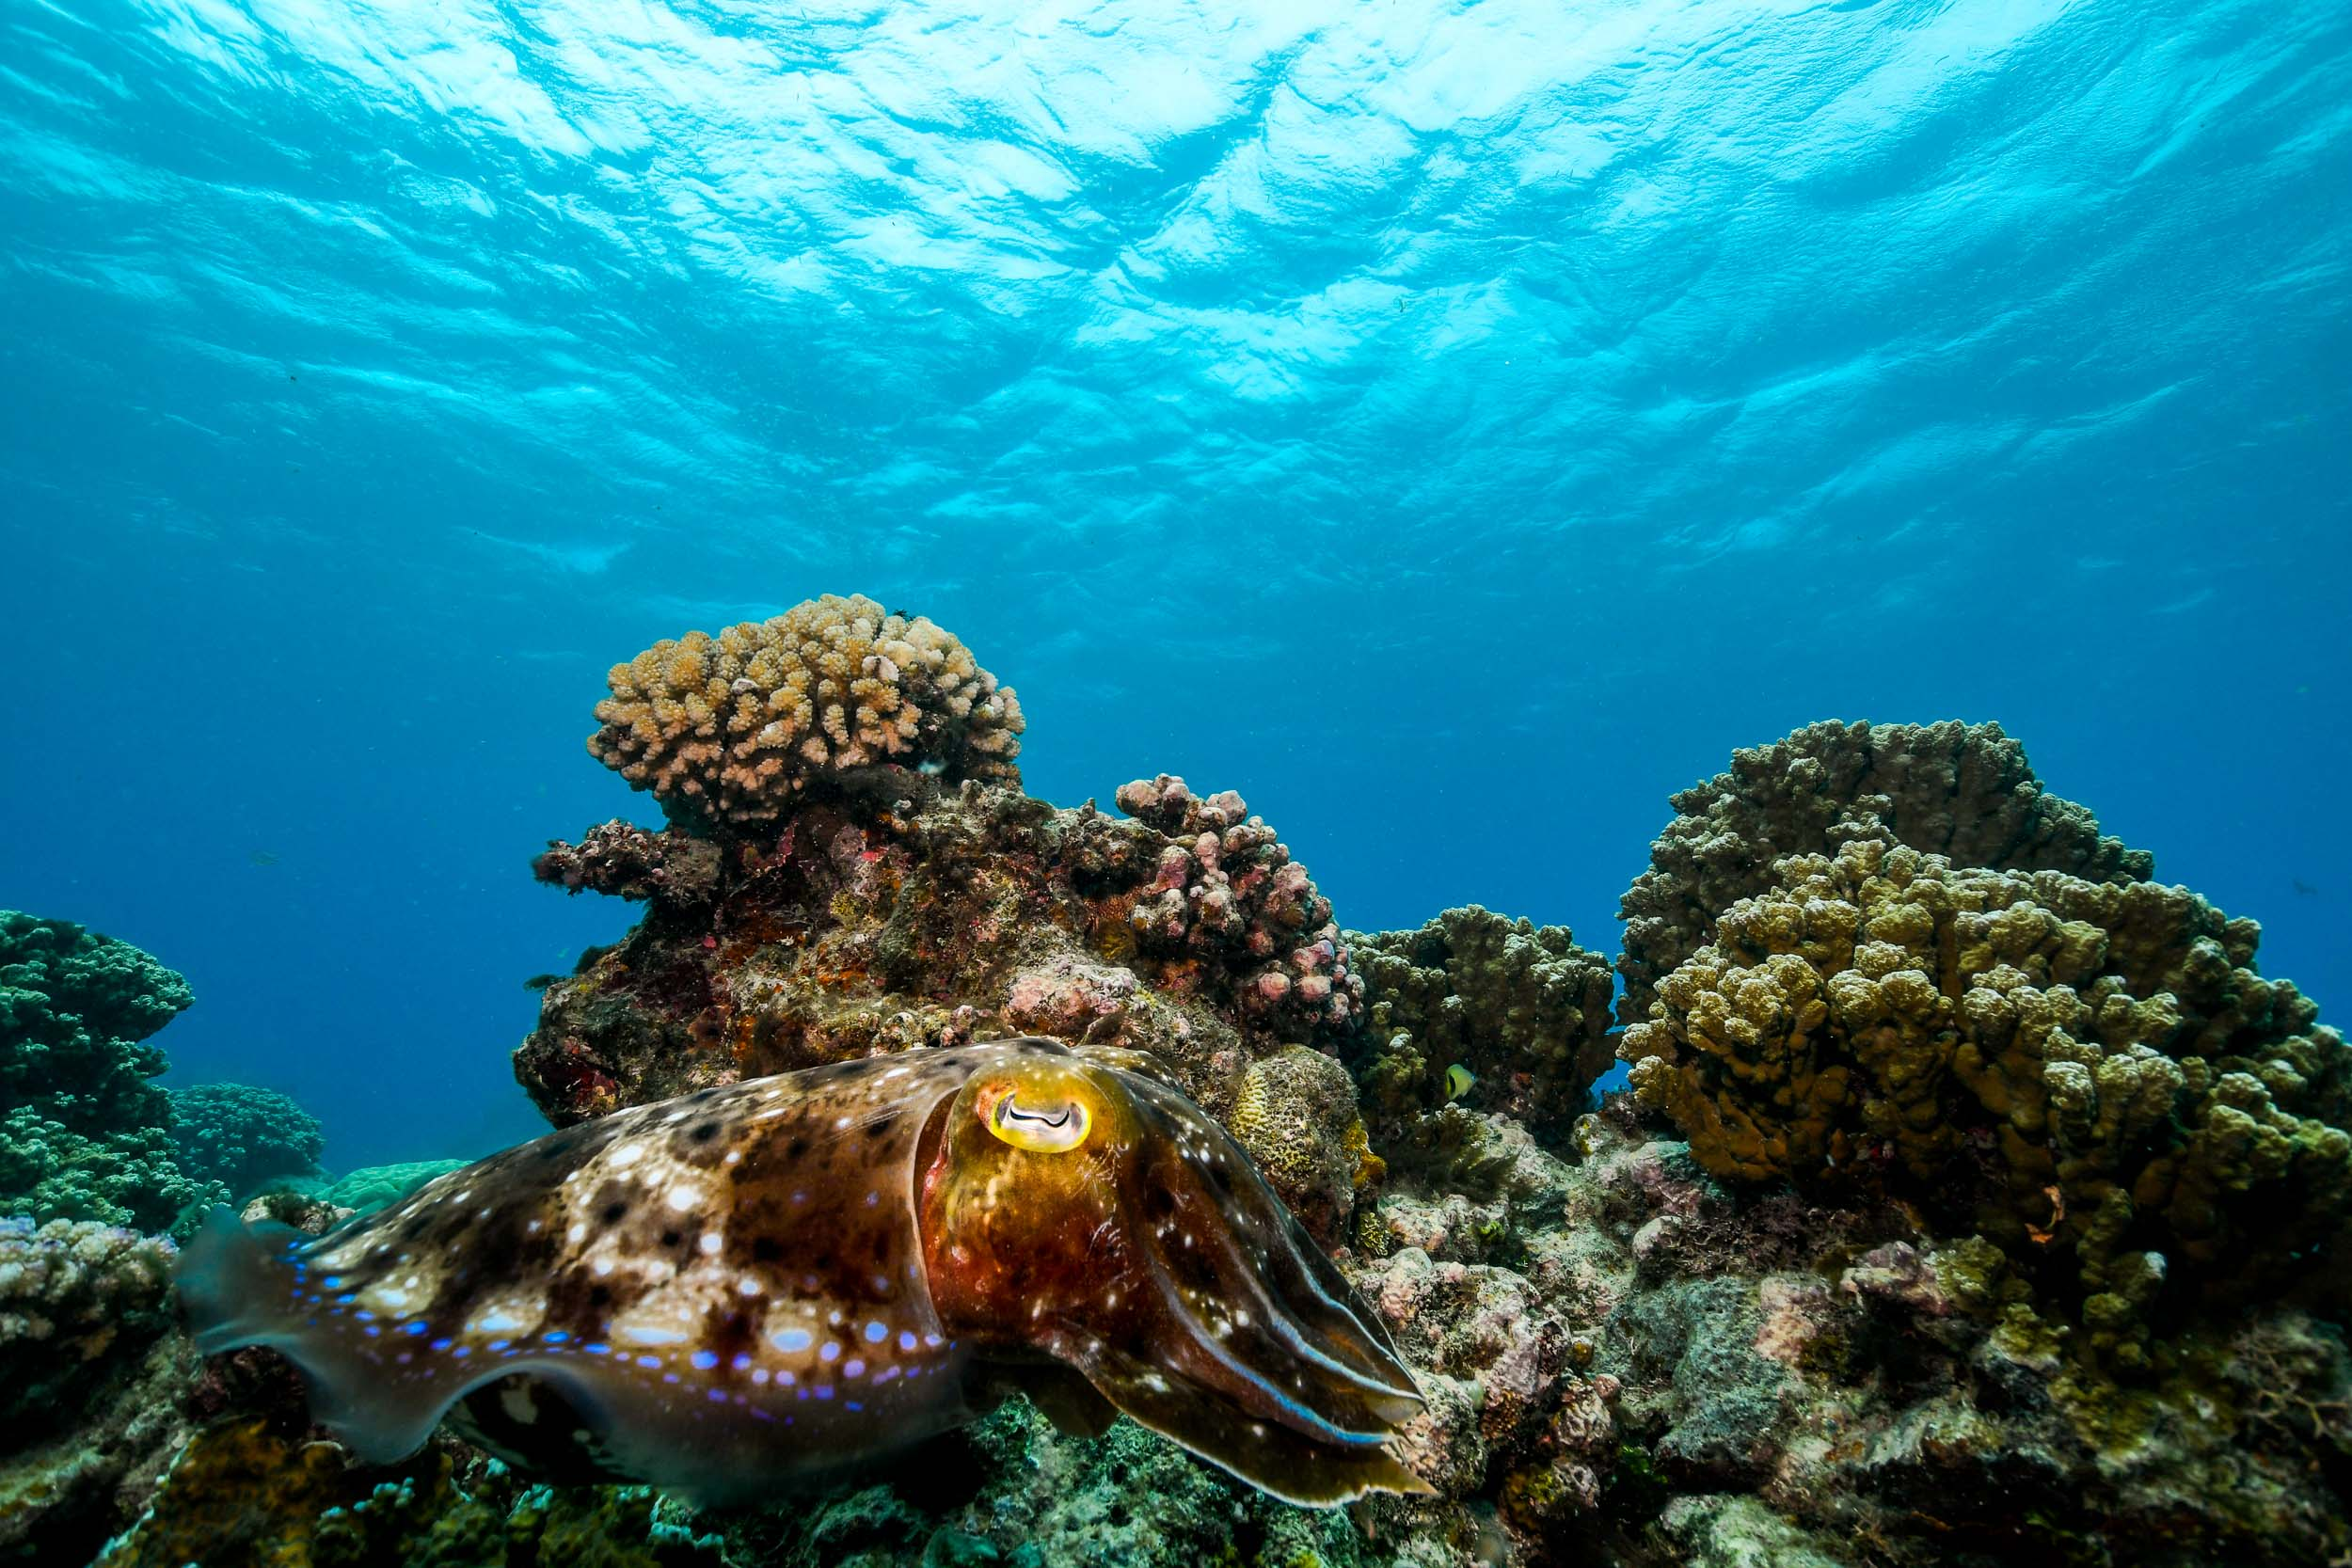 cuttlefish-great-barrier-reef-port-douglas-australia-1.jpg